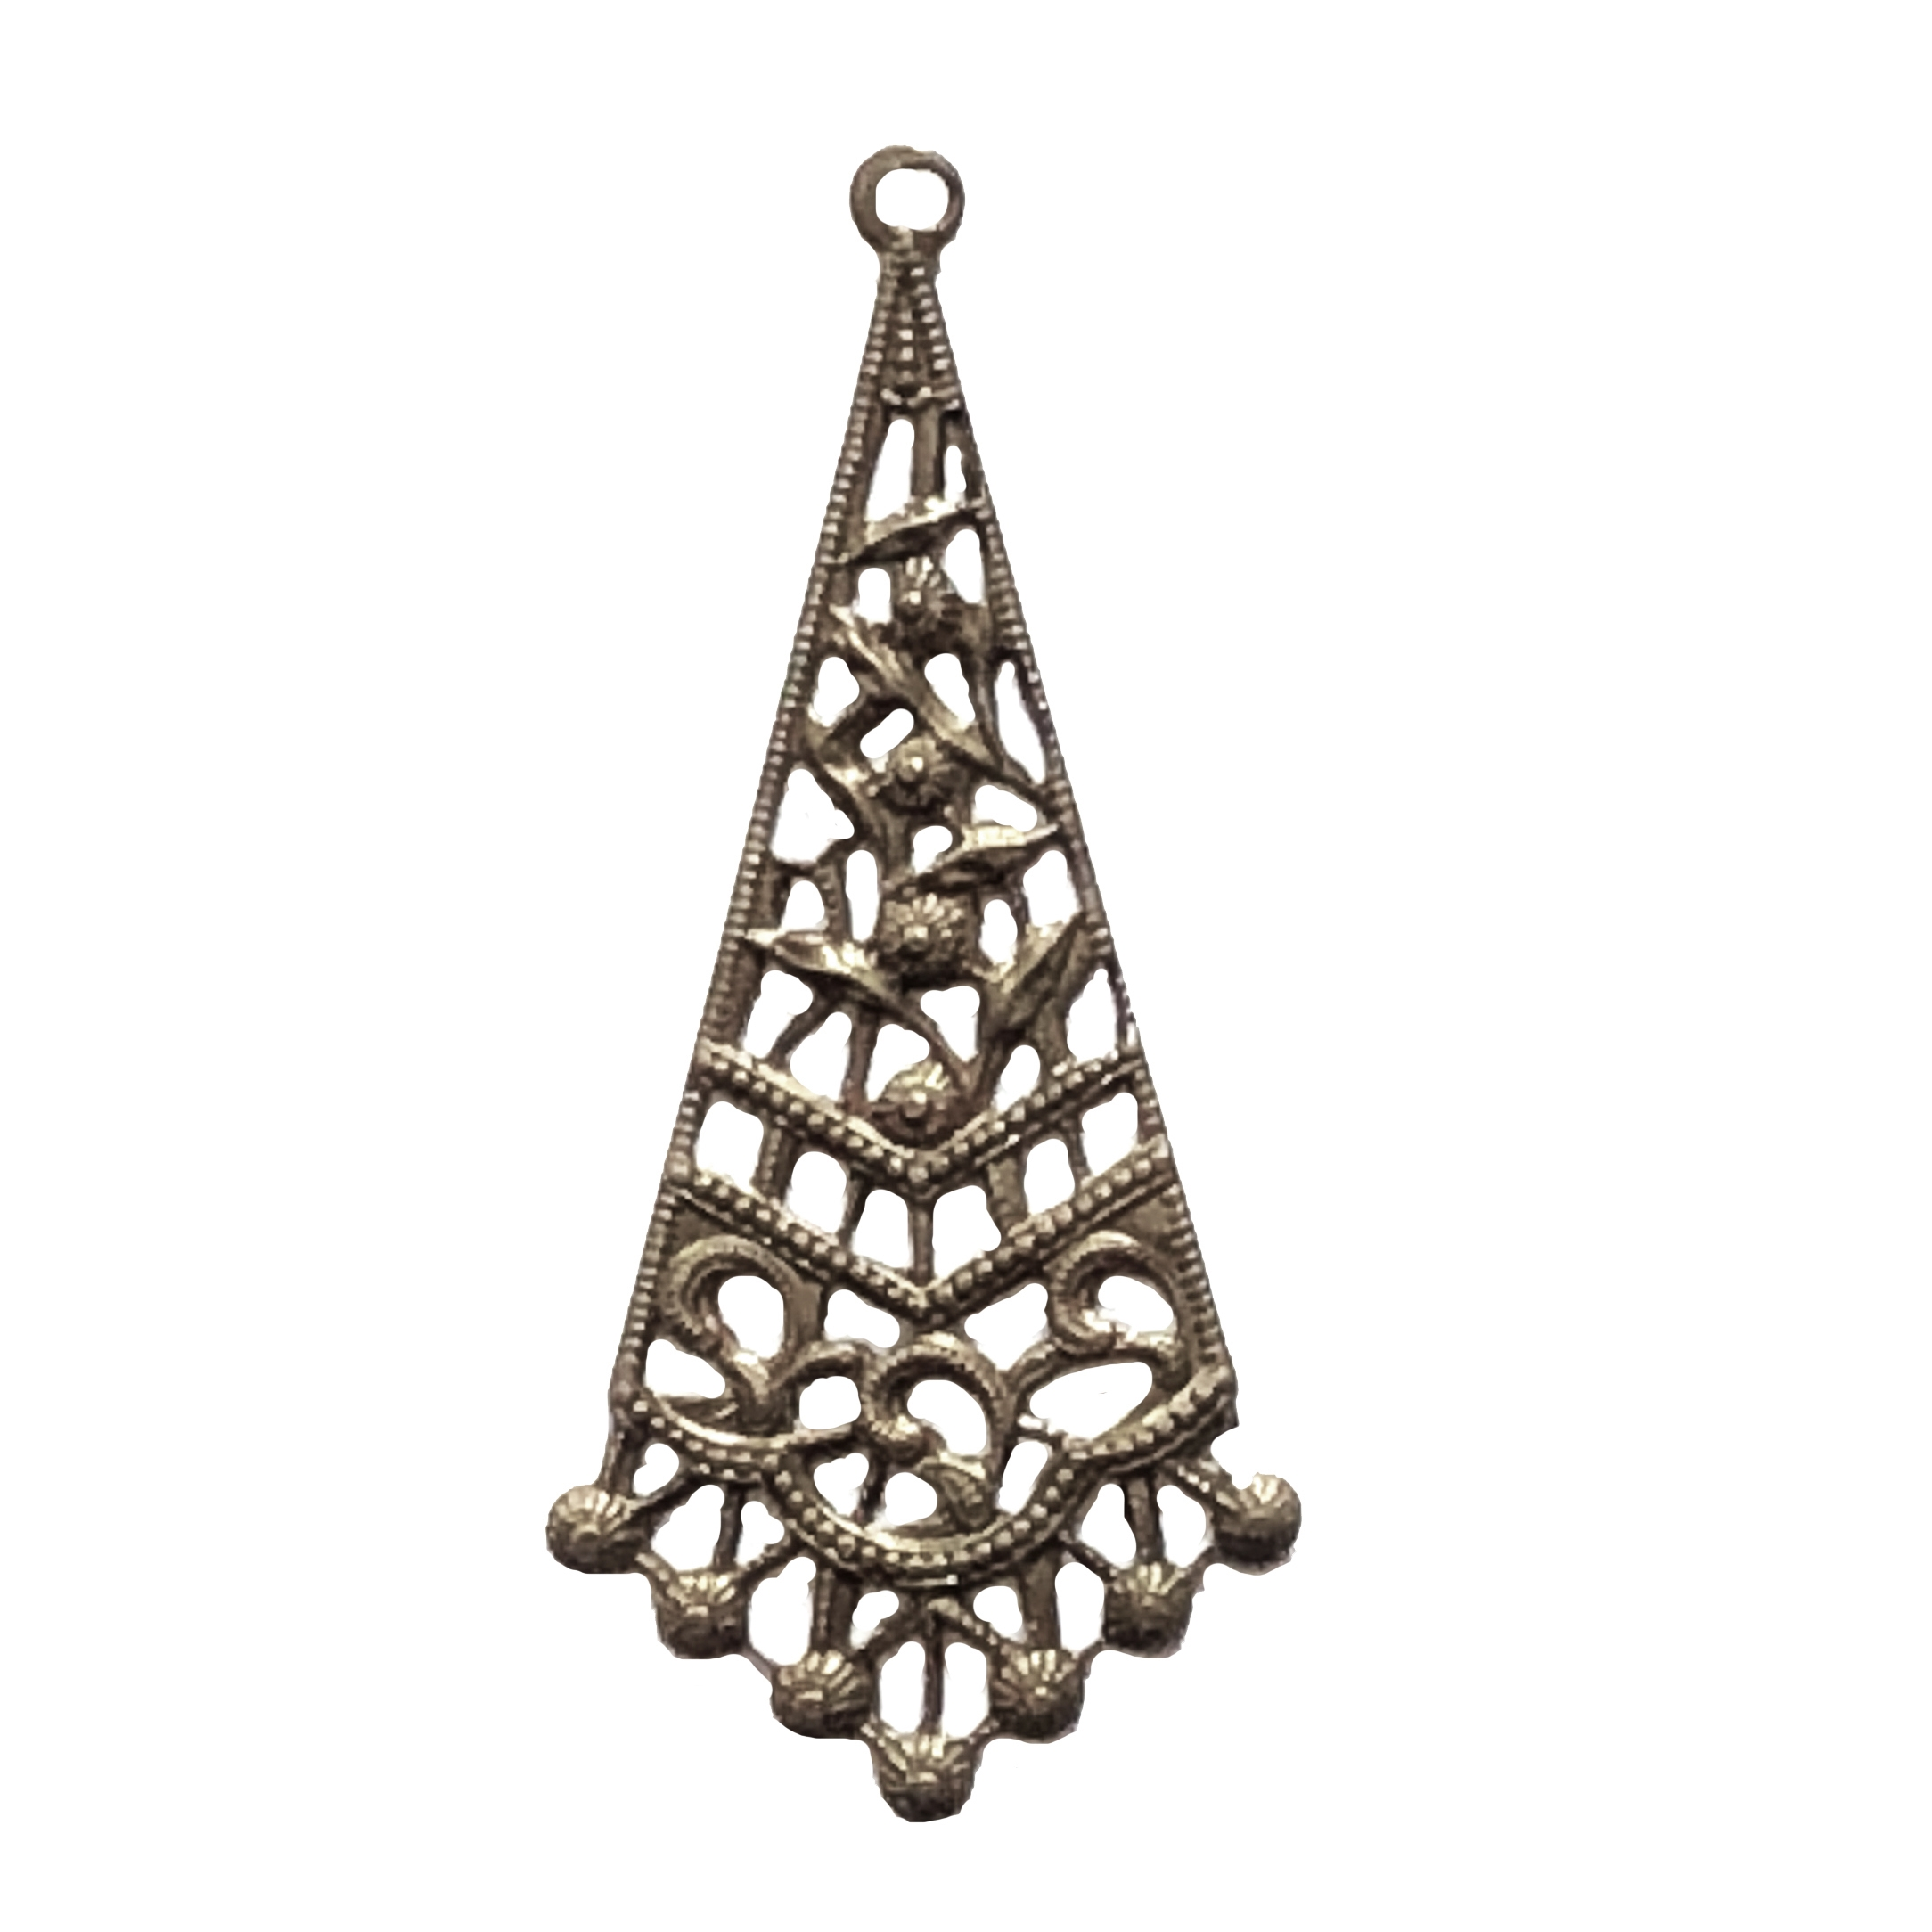 brass filigree drop, chocolate brass, filigree, brass stamping, drop, filigree drop, victorian, pendent, charm, earring drop, brass filigree, us made, nickel free, jewelry making, jewelry findings, vintage supplies, jewelry supplies, 09898